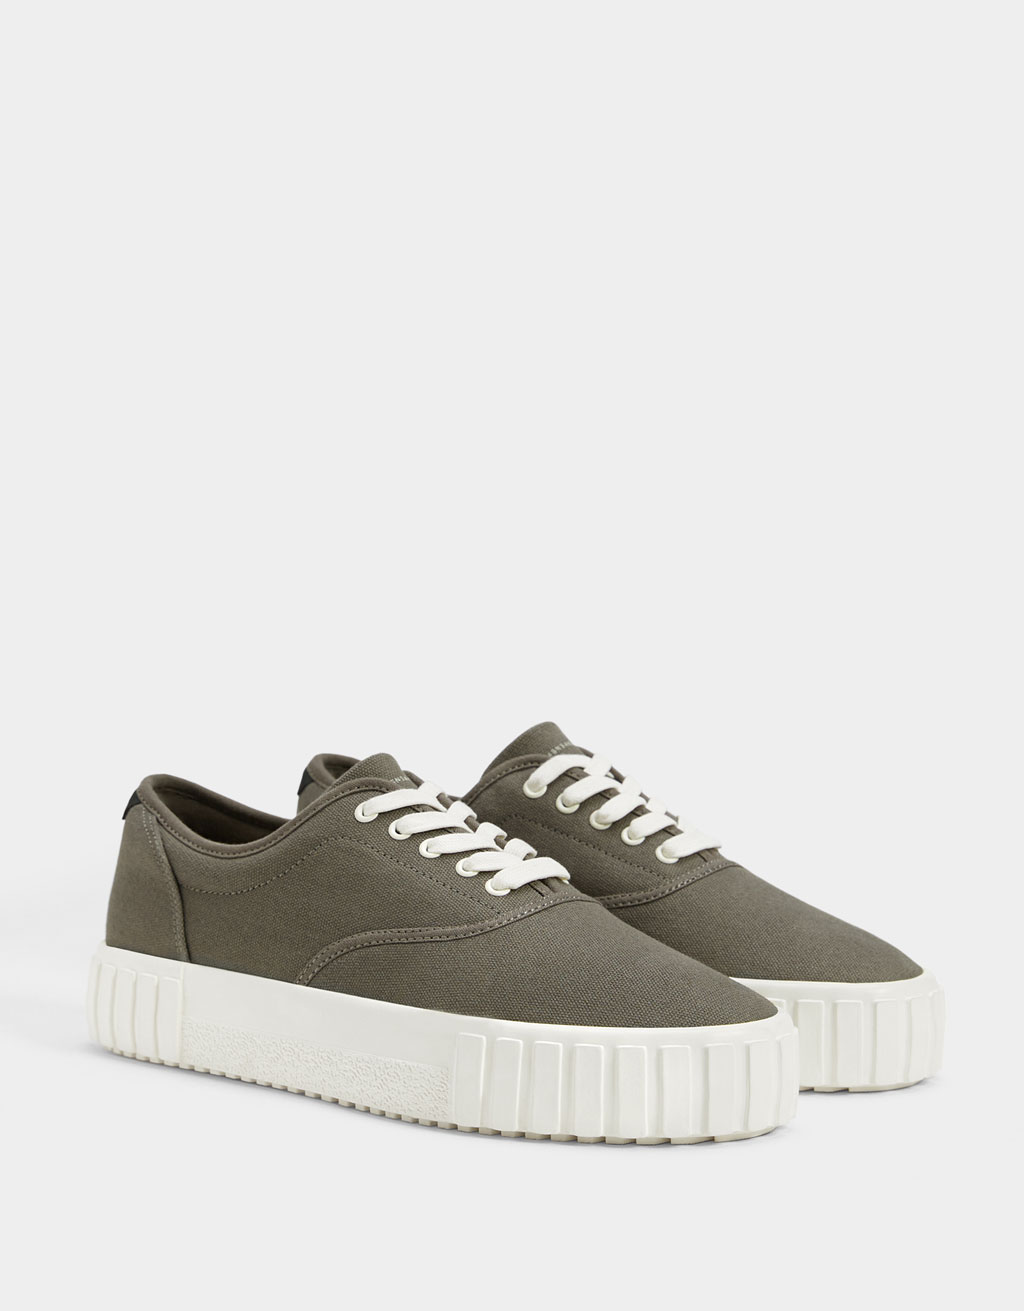 Men's contrast fabric trainers